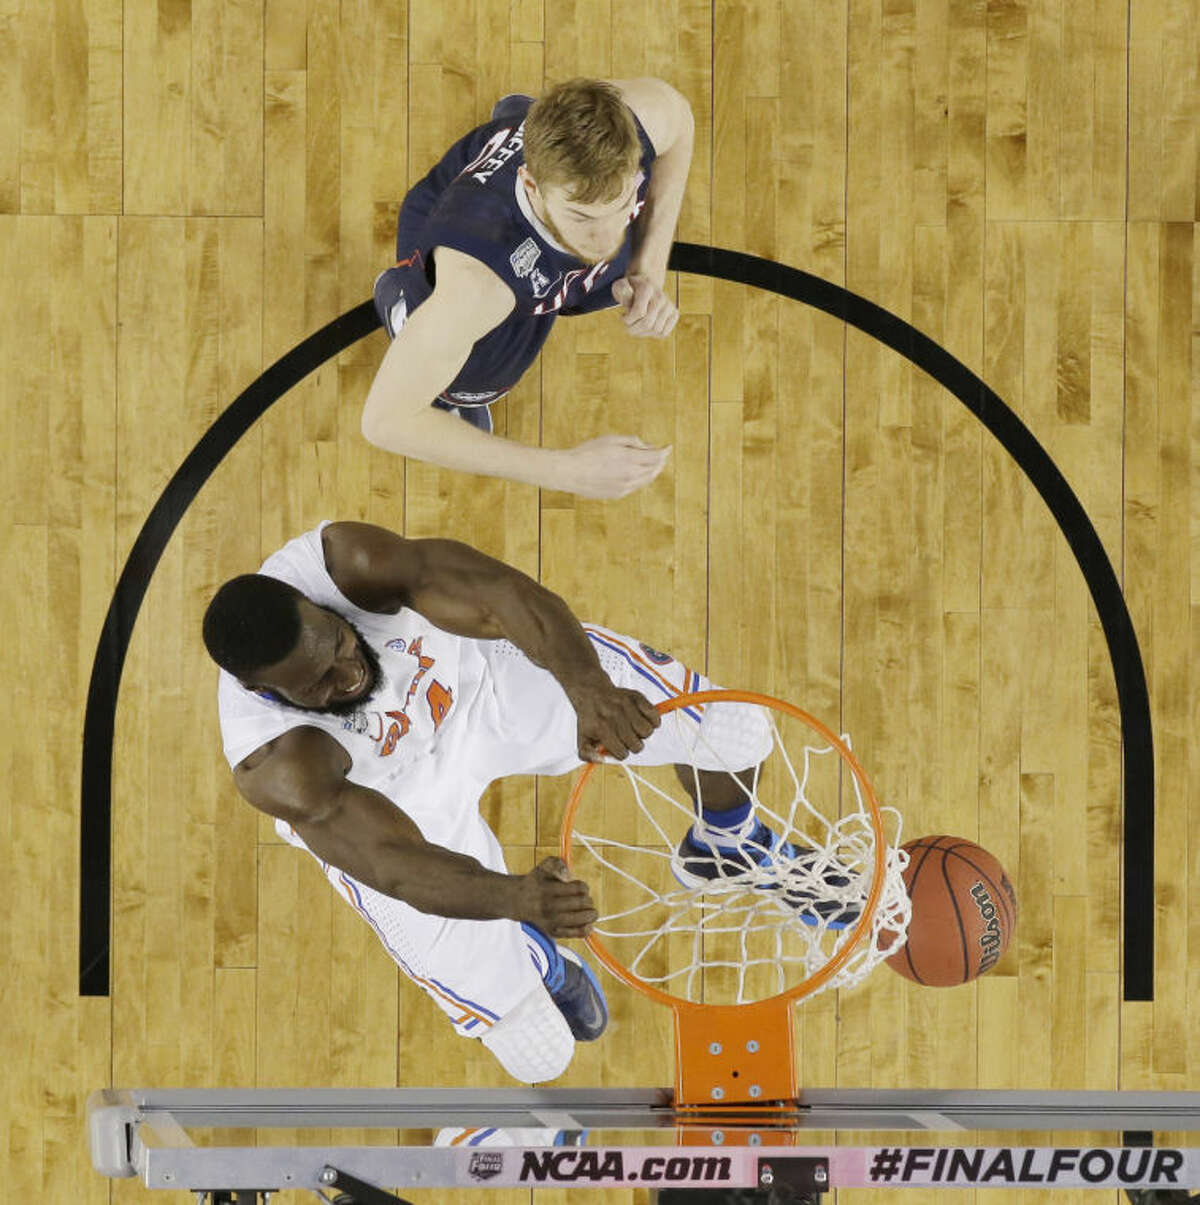 Florida center Patric Young (4) dunks as Connecticut guard/forward Niels Giffey (5) looks on during the second half of the NCAA Final Four tournament college basketball semifinal game Saturday, April 5, 2014, in Arlington, Texas. (AP Photo/David J. Phillip)